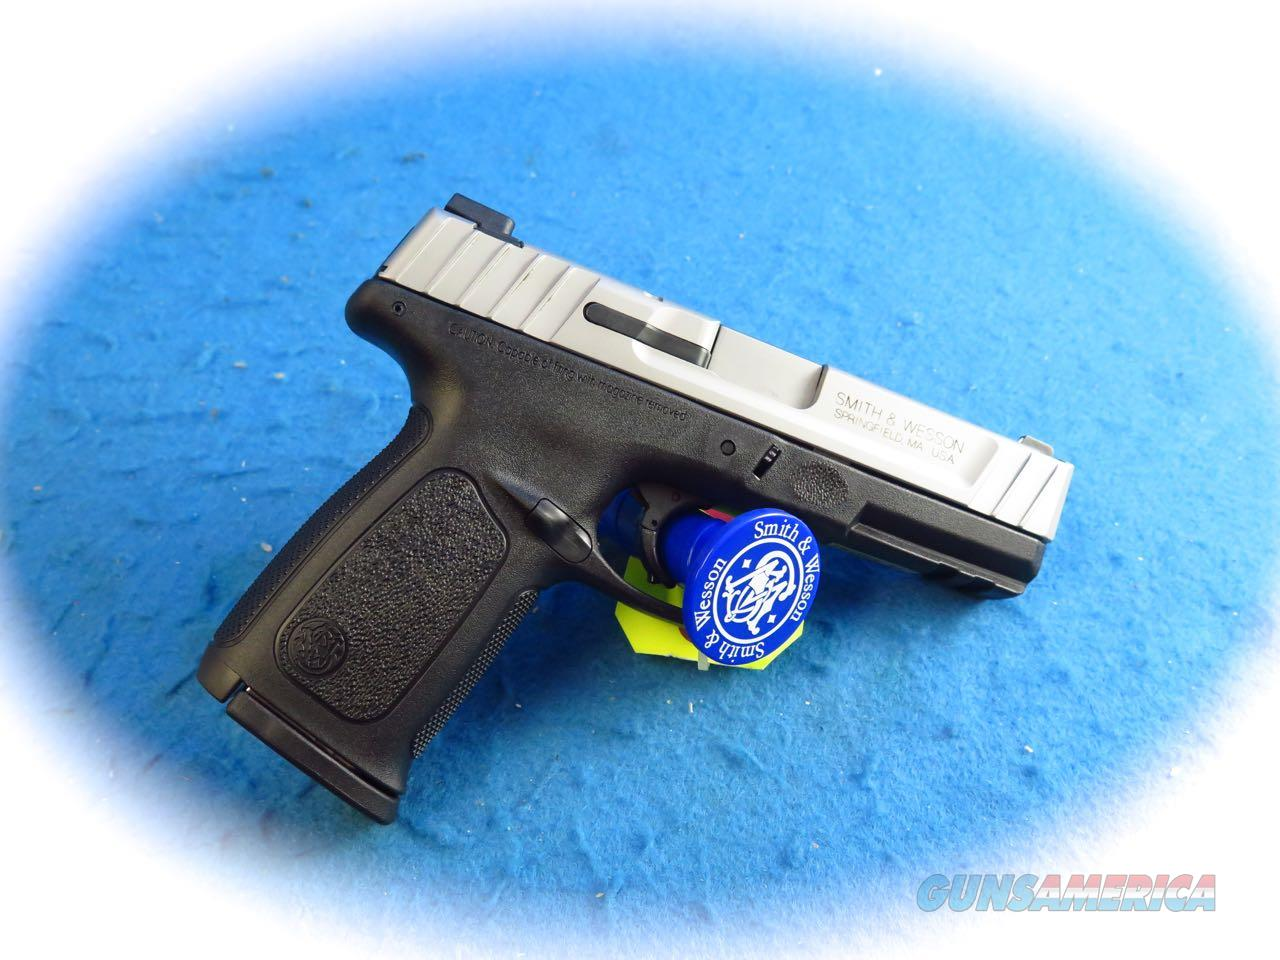 Smith & Wesson Model SD9VE 9mm Semi Auto Pistol Model 223900 **New**  Guns > Pistols > Smith & Wesson Pistols - Autos > Polymer Frame